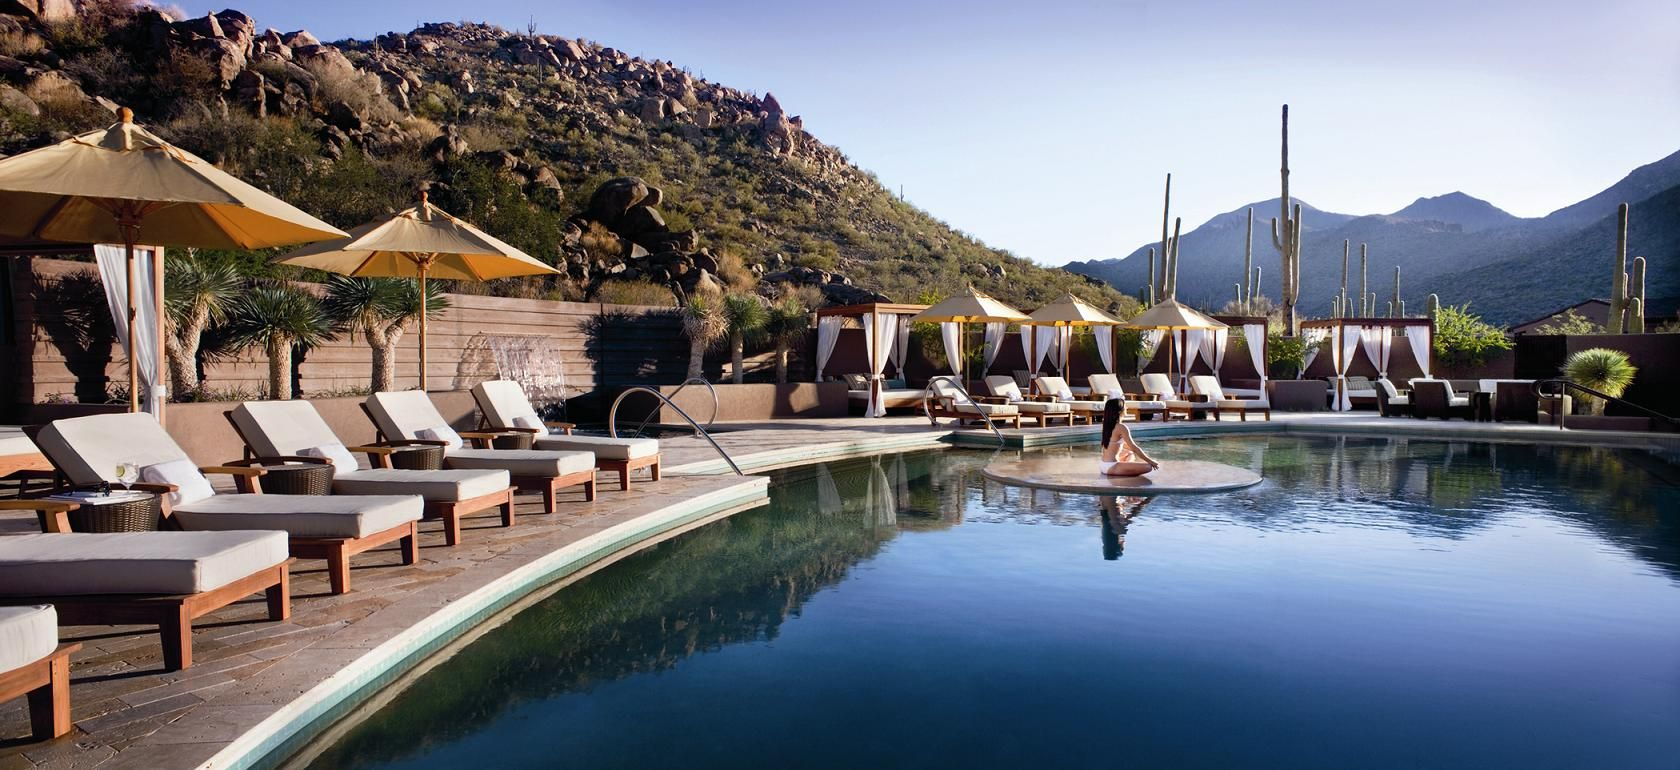 Best hotels in Tucson   Travel